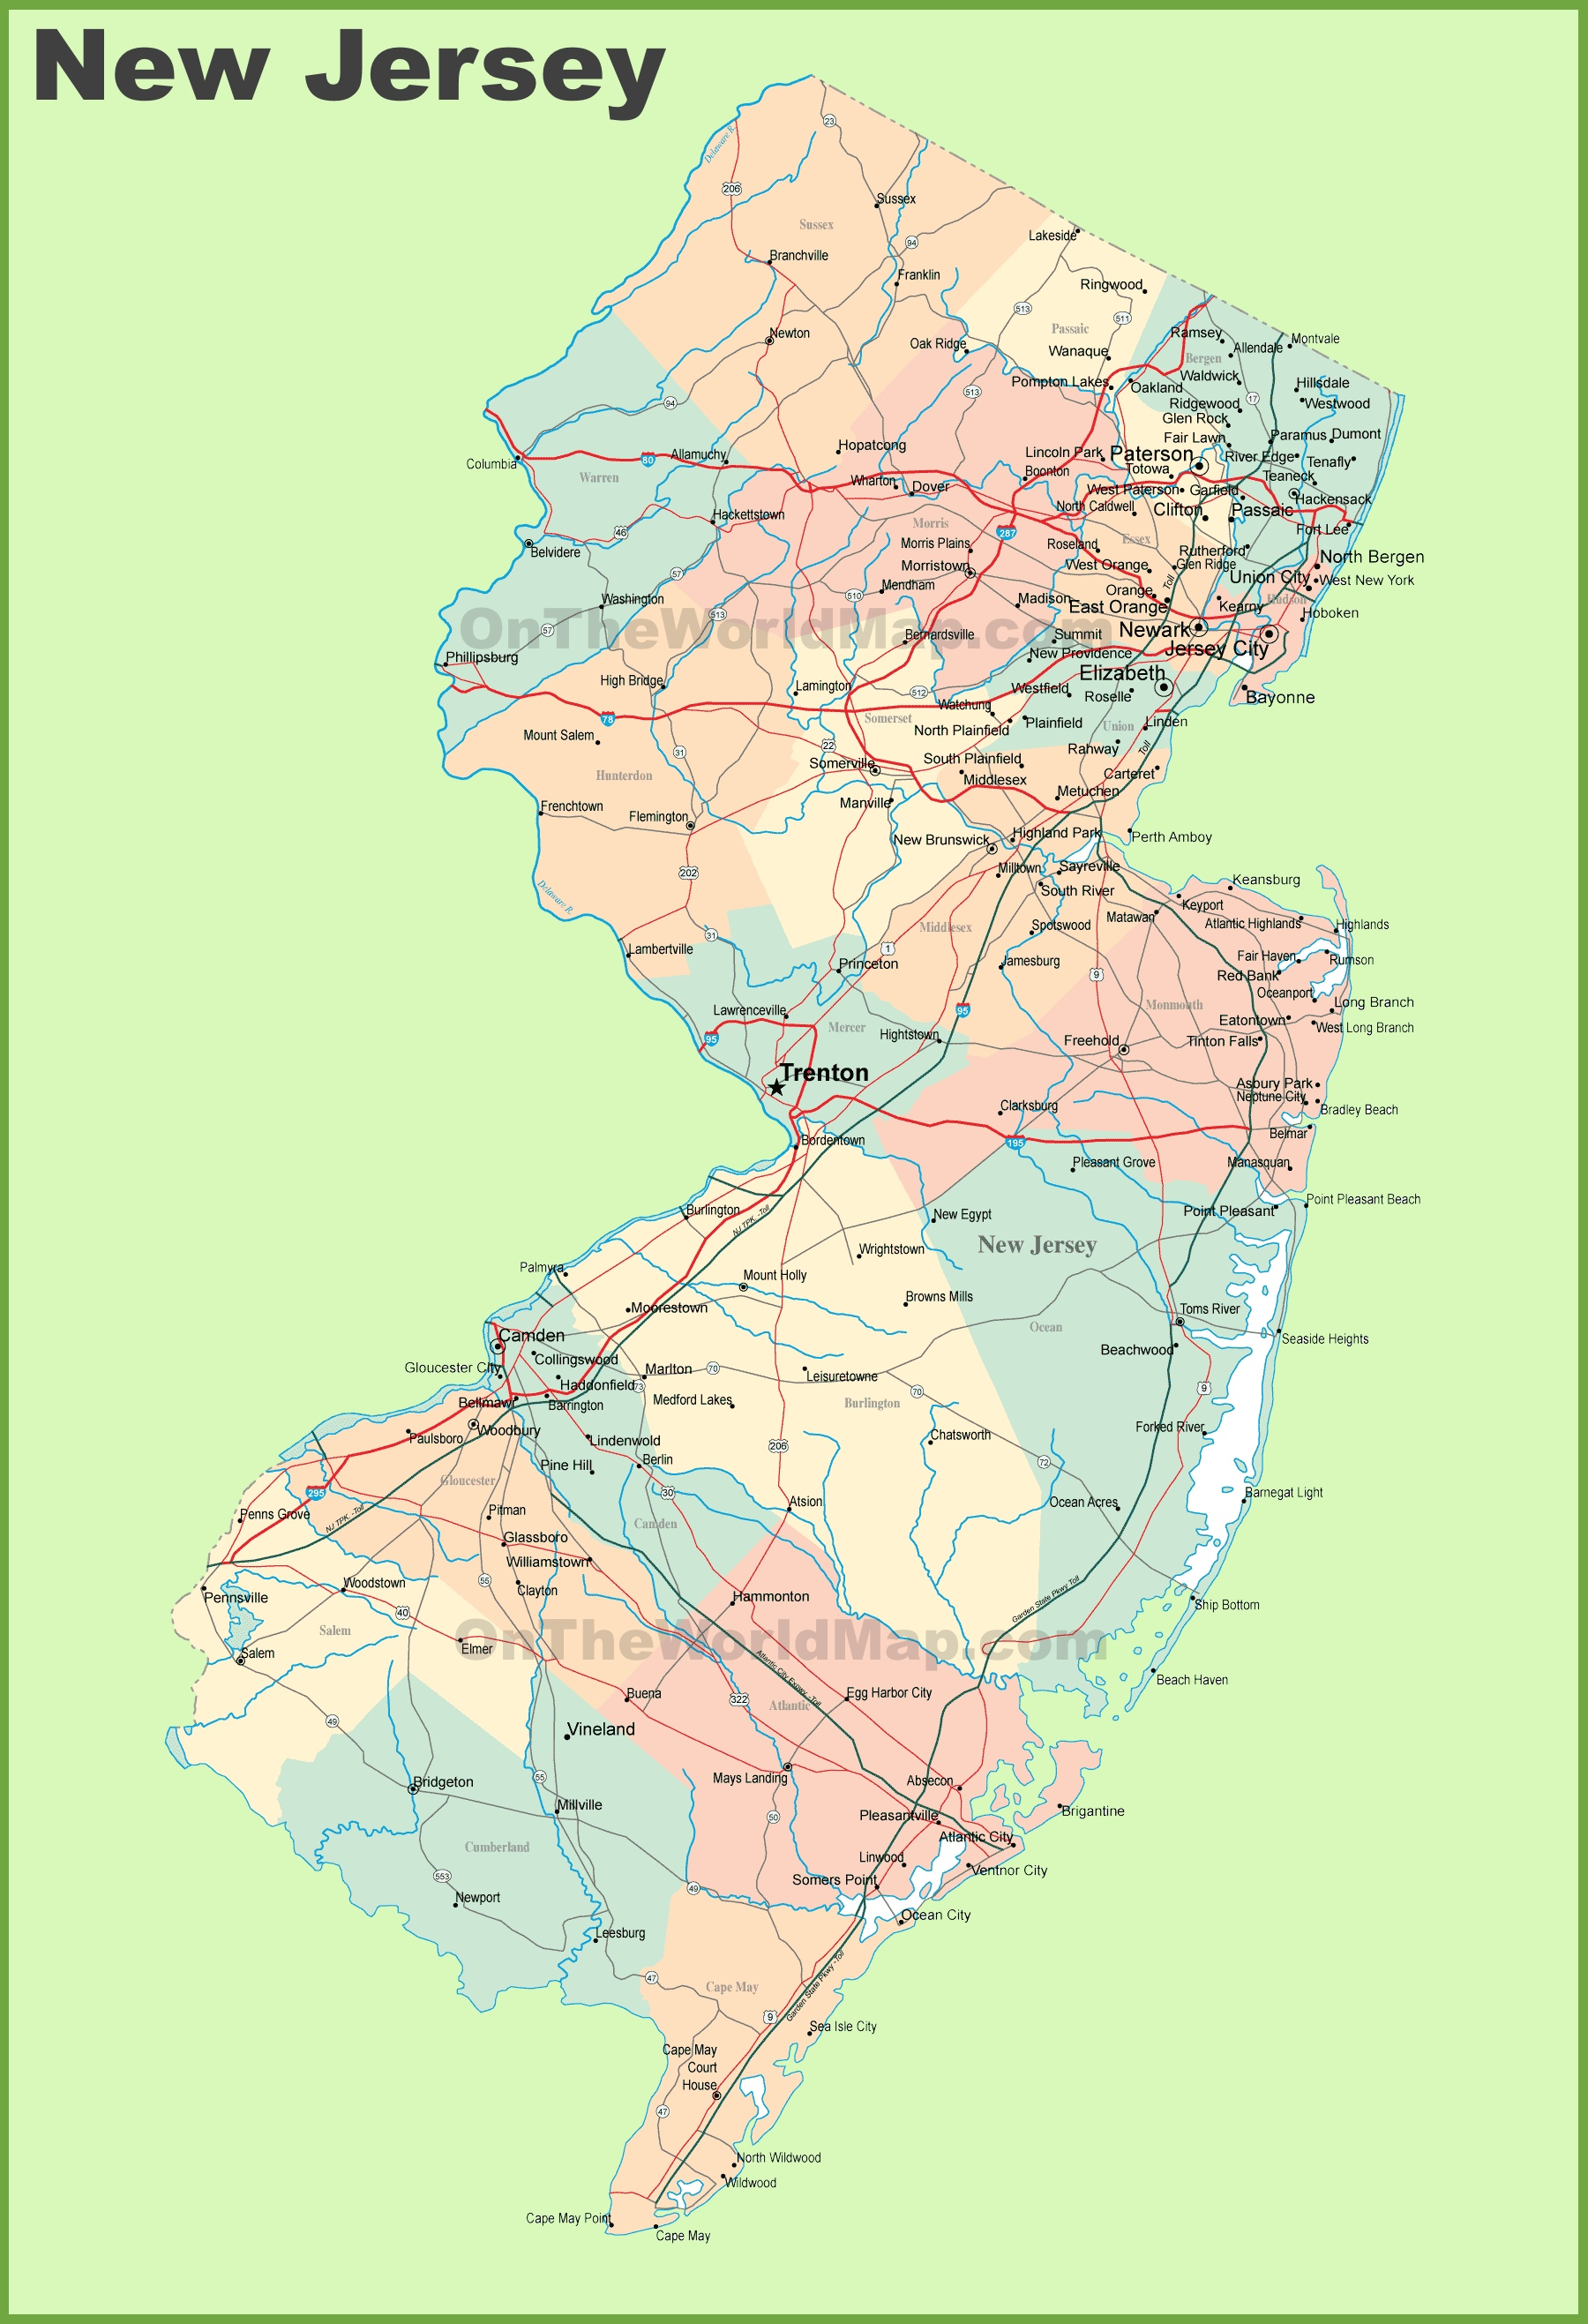 Road map of New Jersey with cities